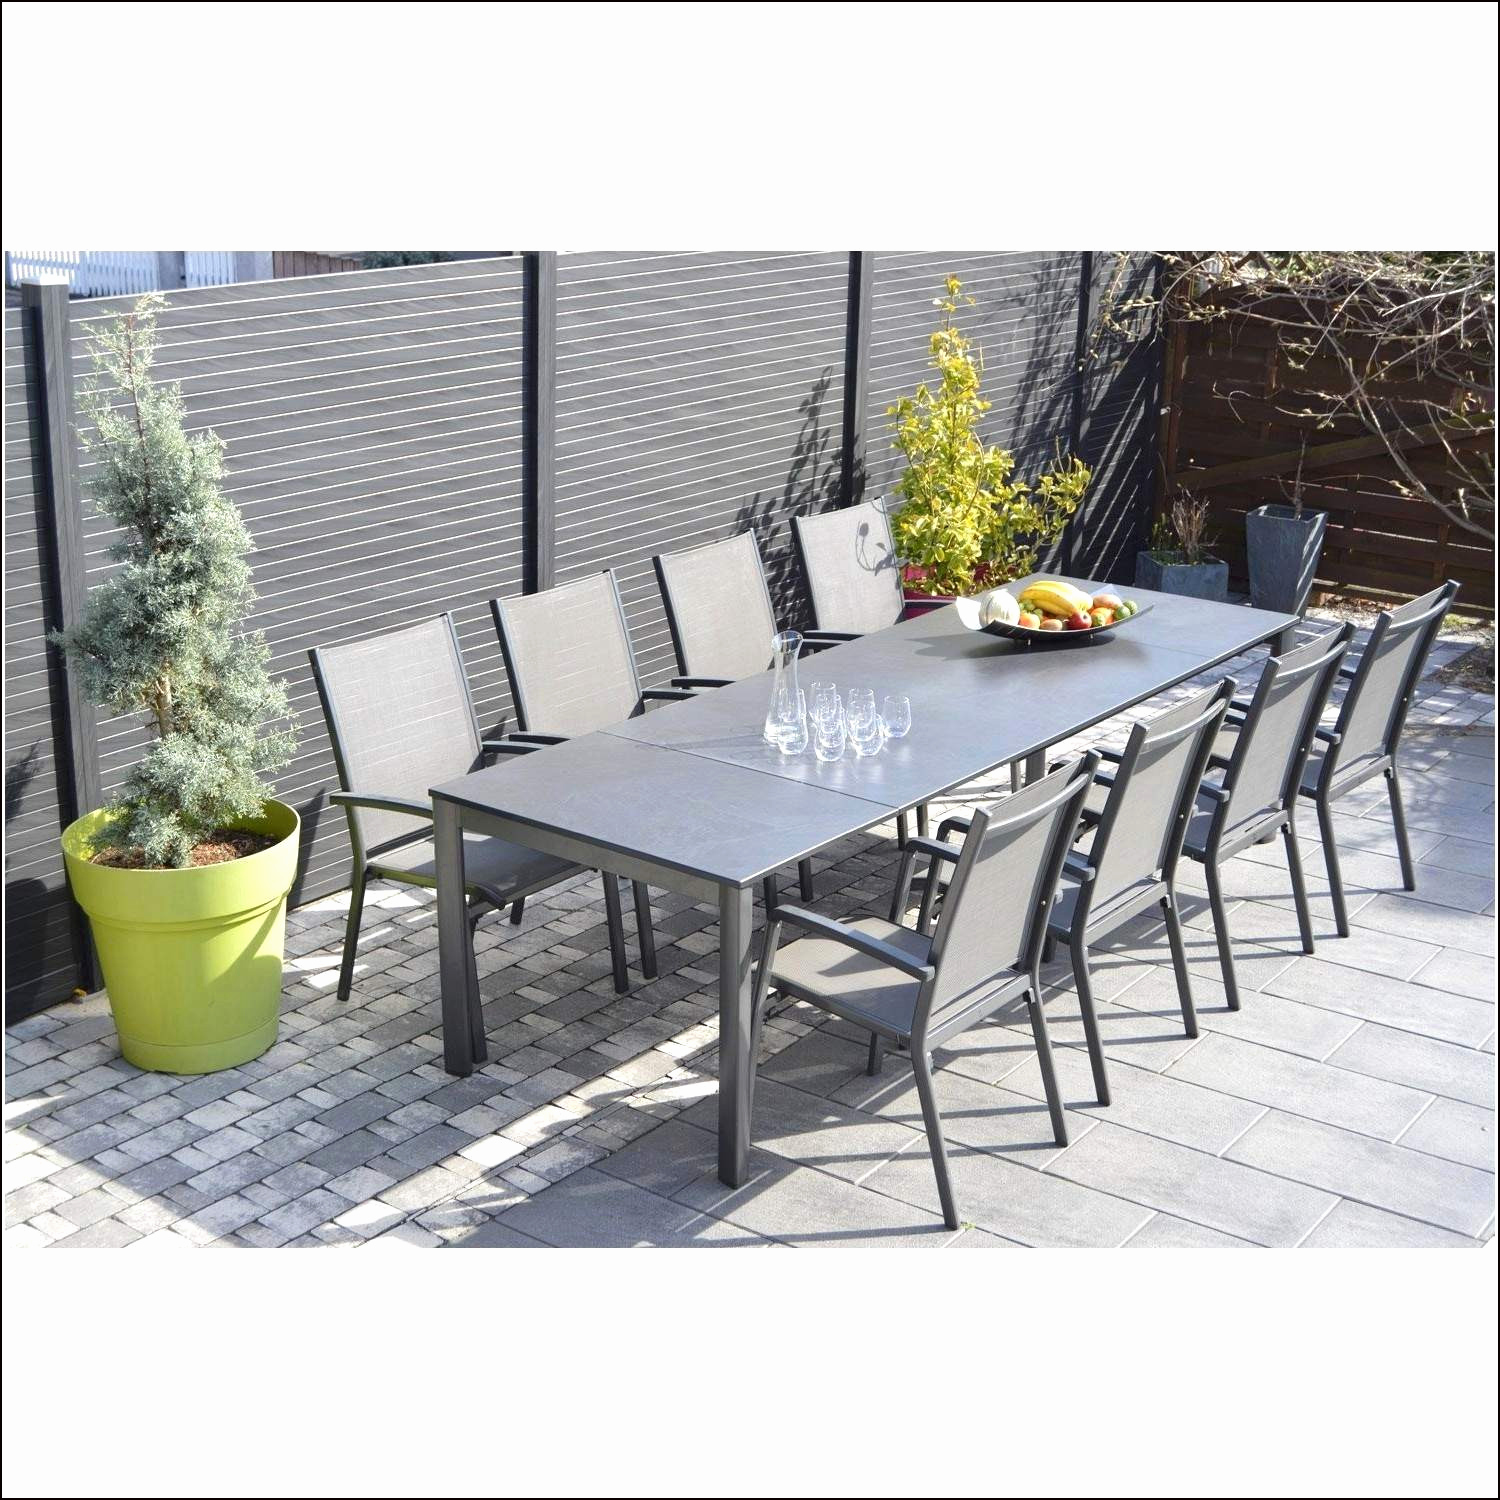 stupefiant photographie de table salon ikea frais table de jardin pas cher ikea autre ruse salon de jardin pas cher of stupefiant photographie de table salon ikea